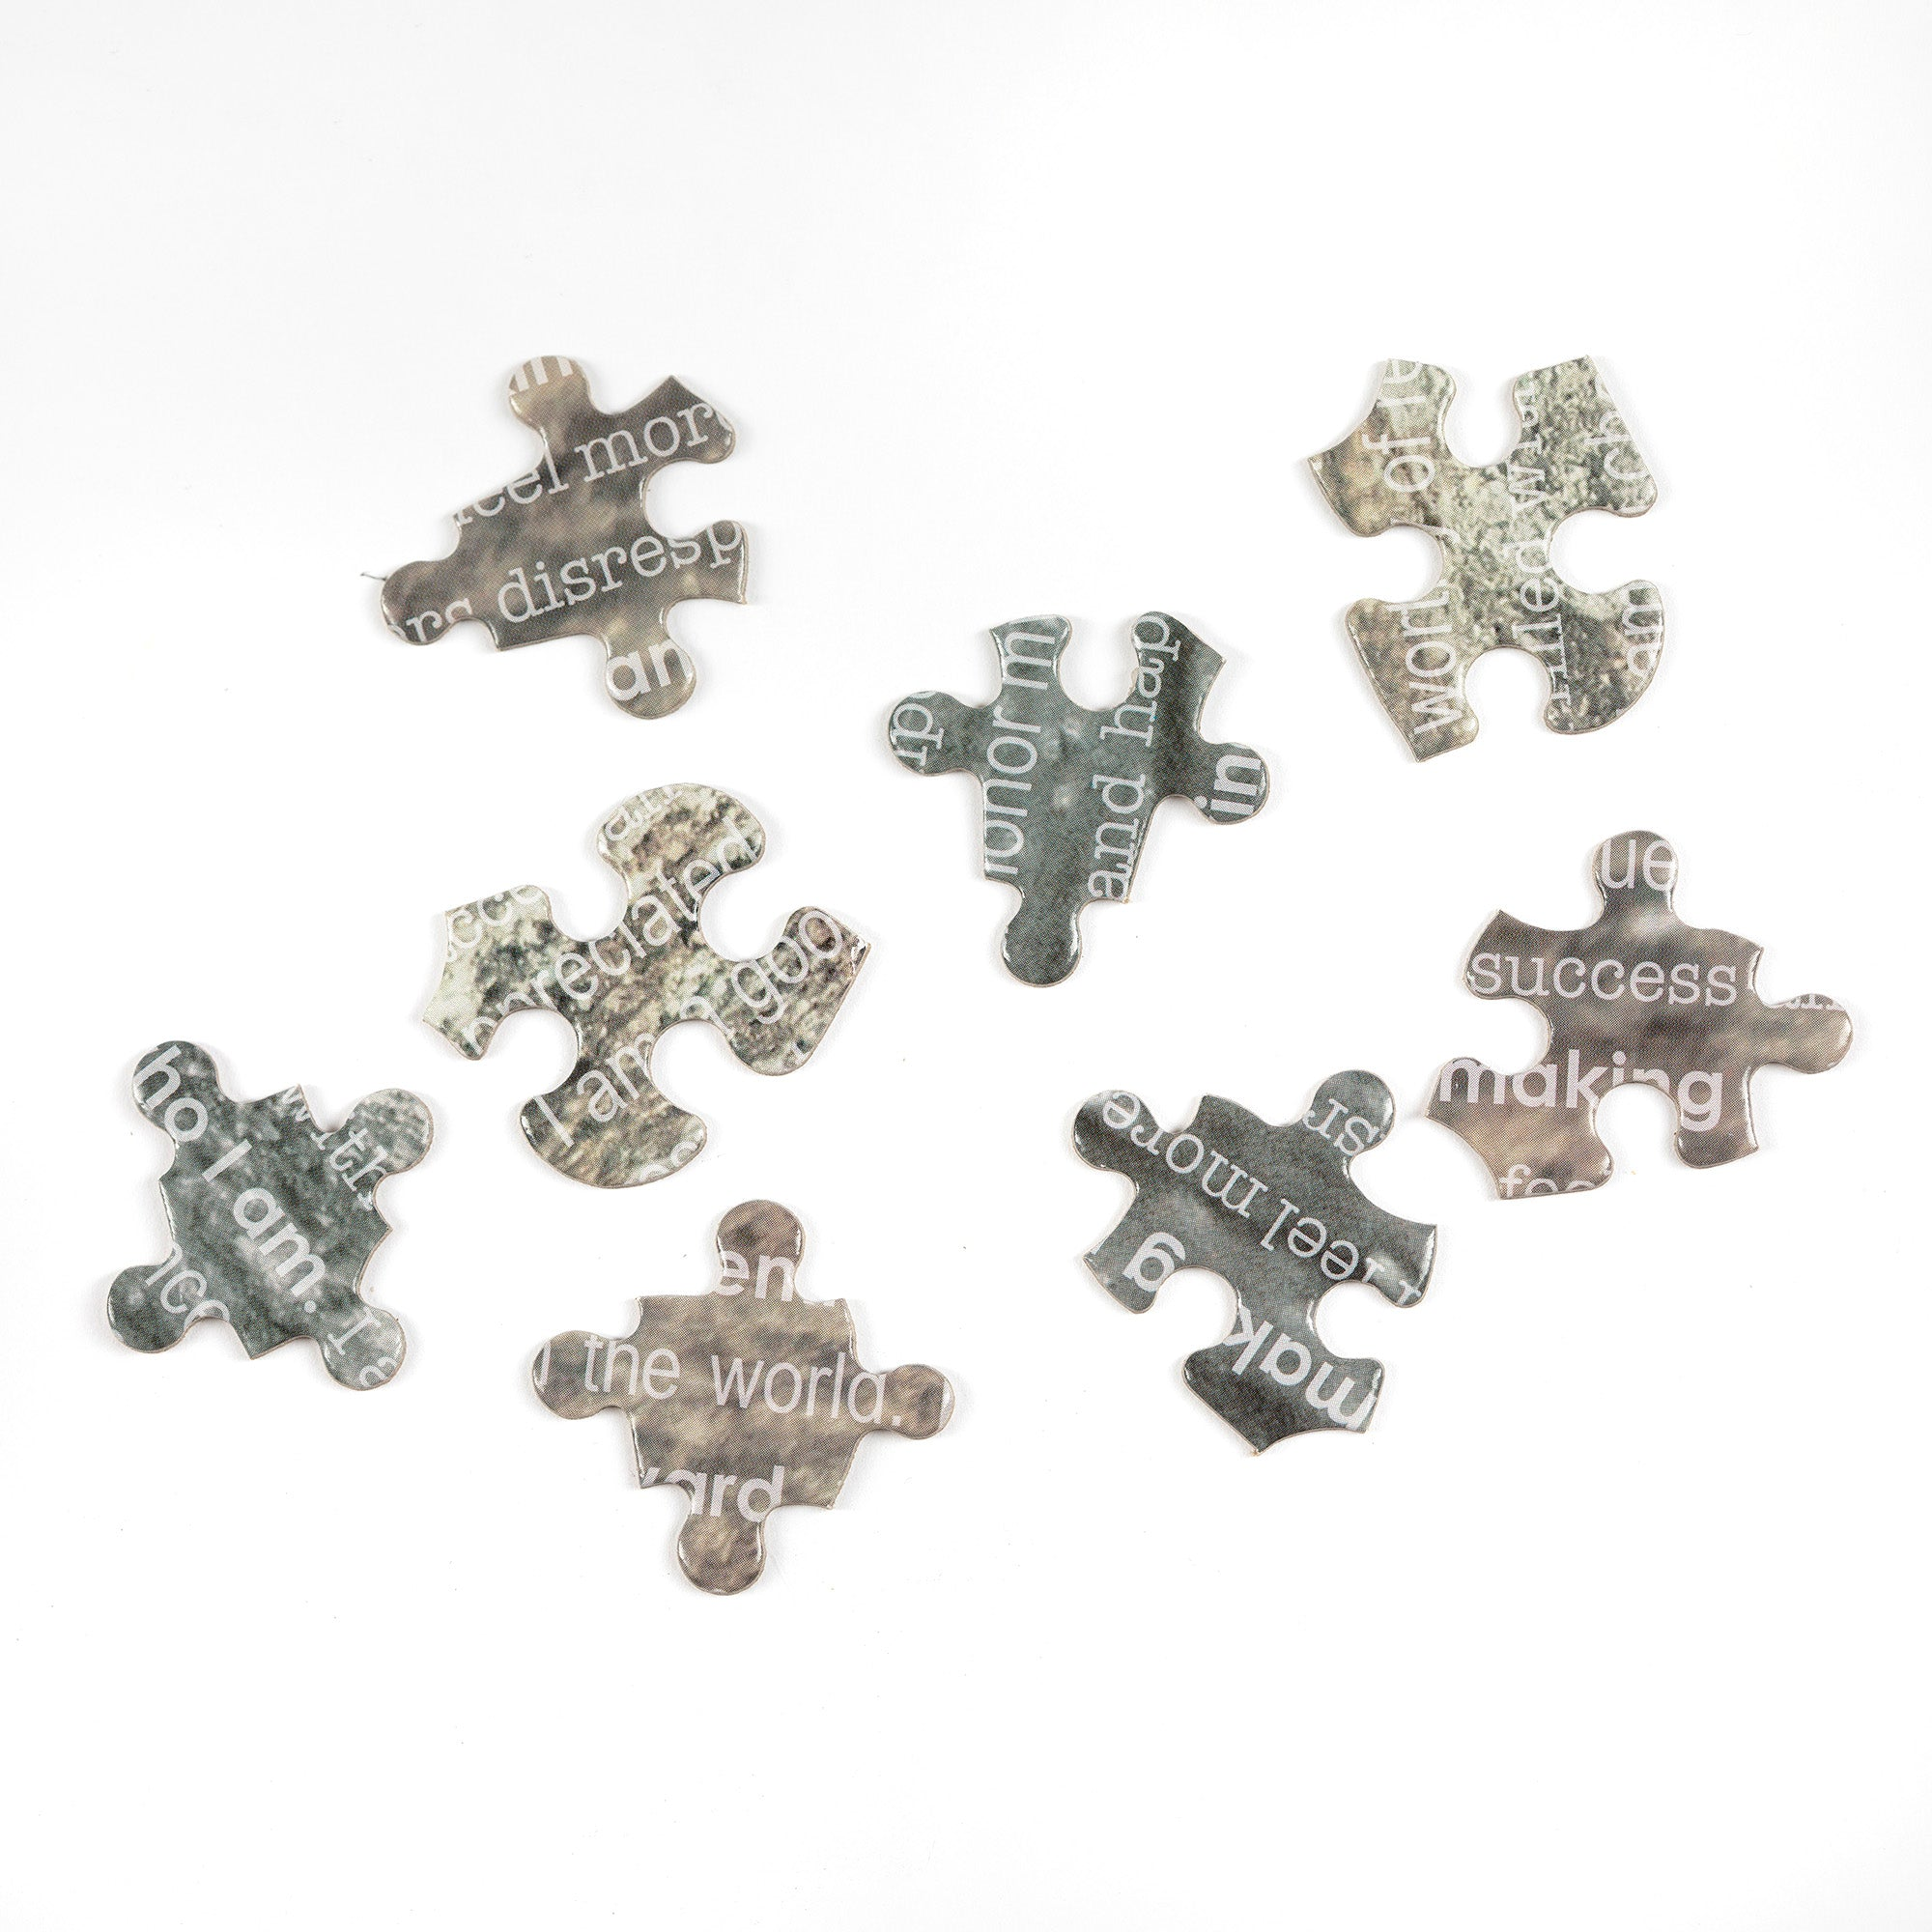 Assorted jigsaw puzzle pieces